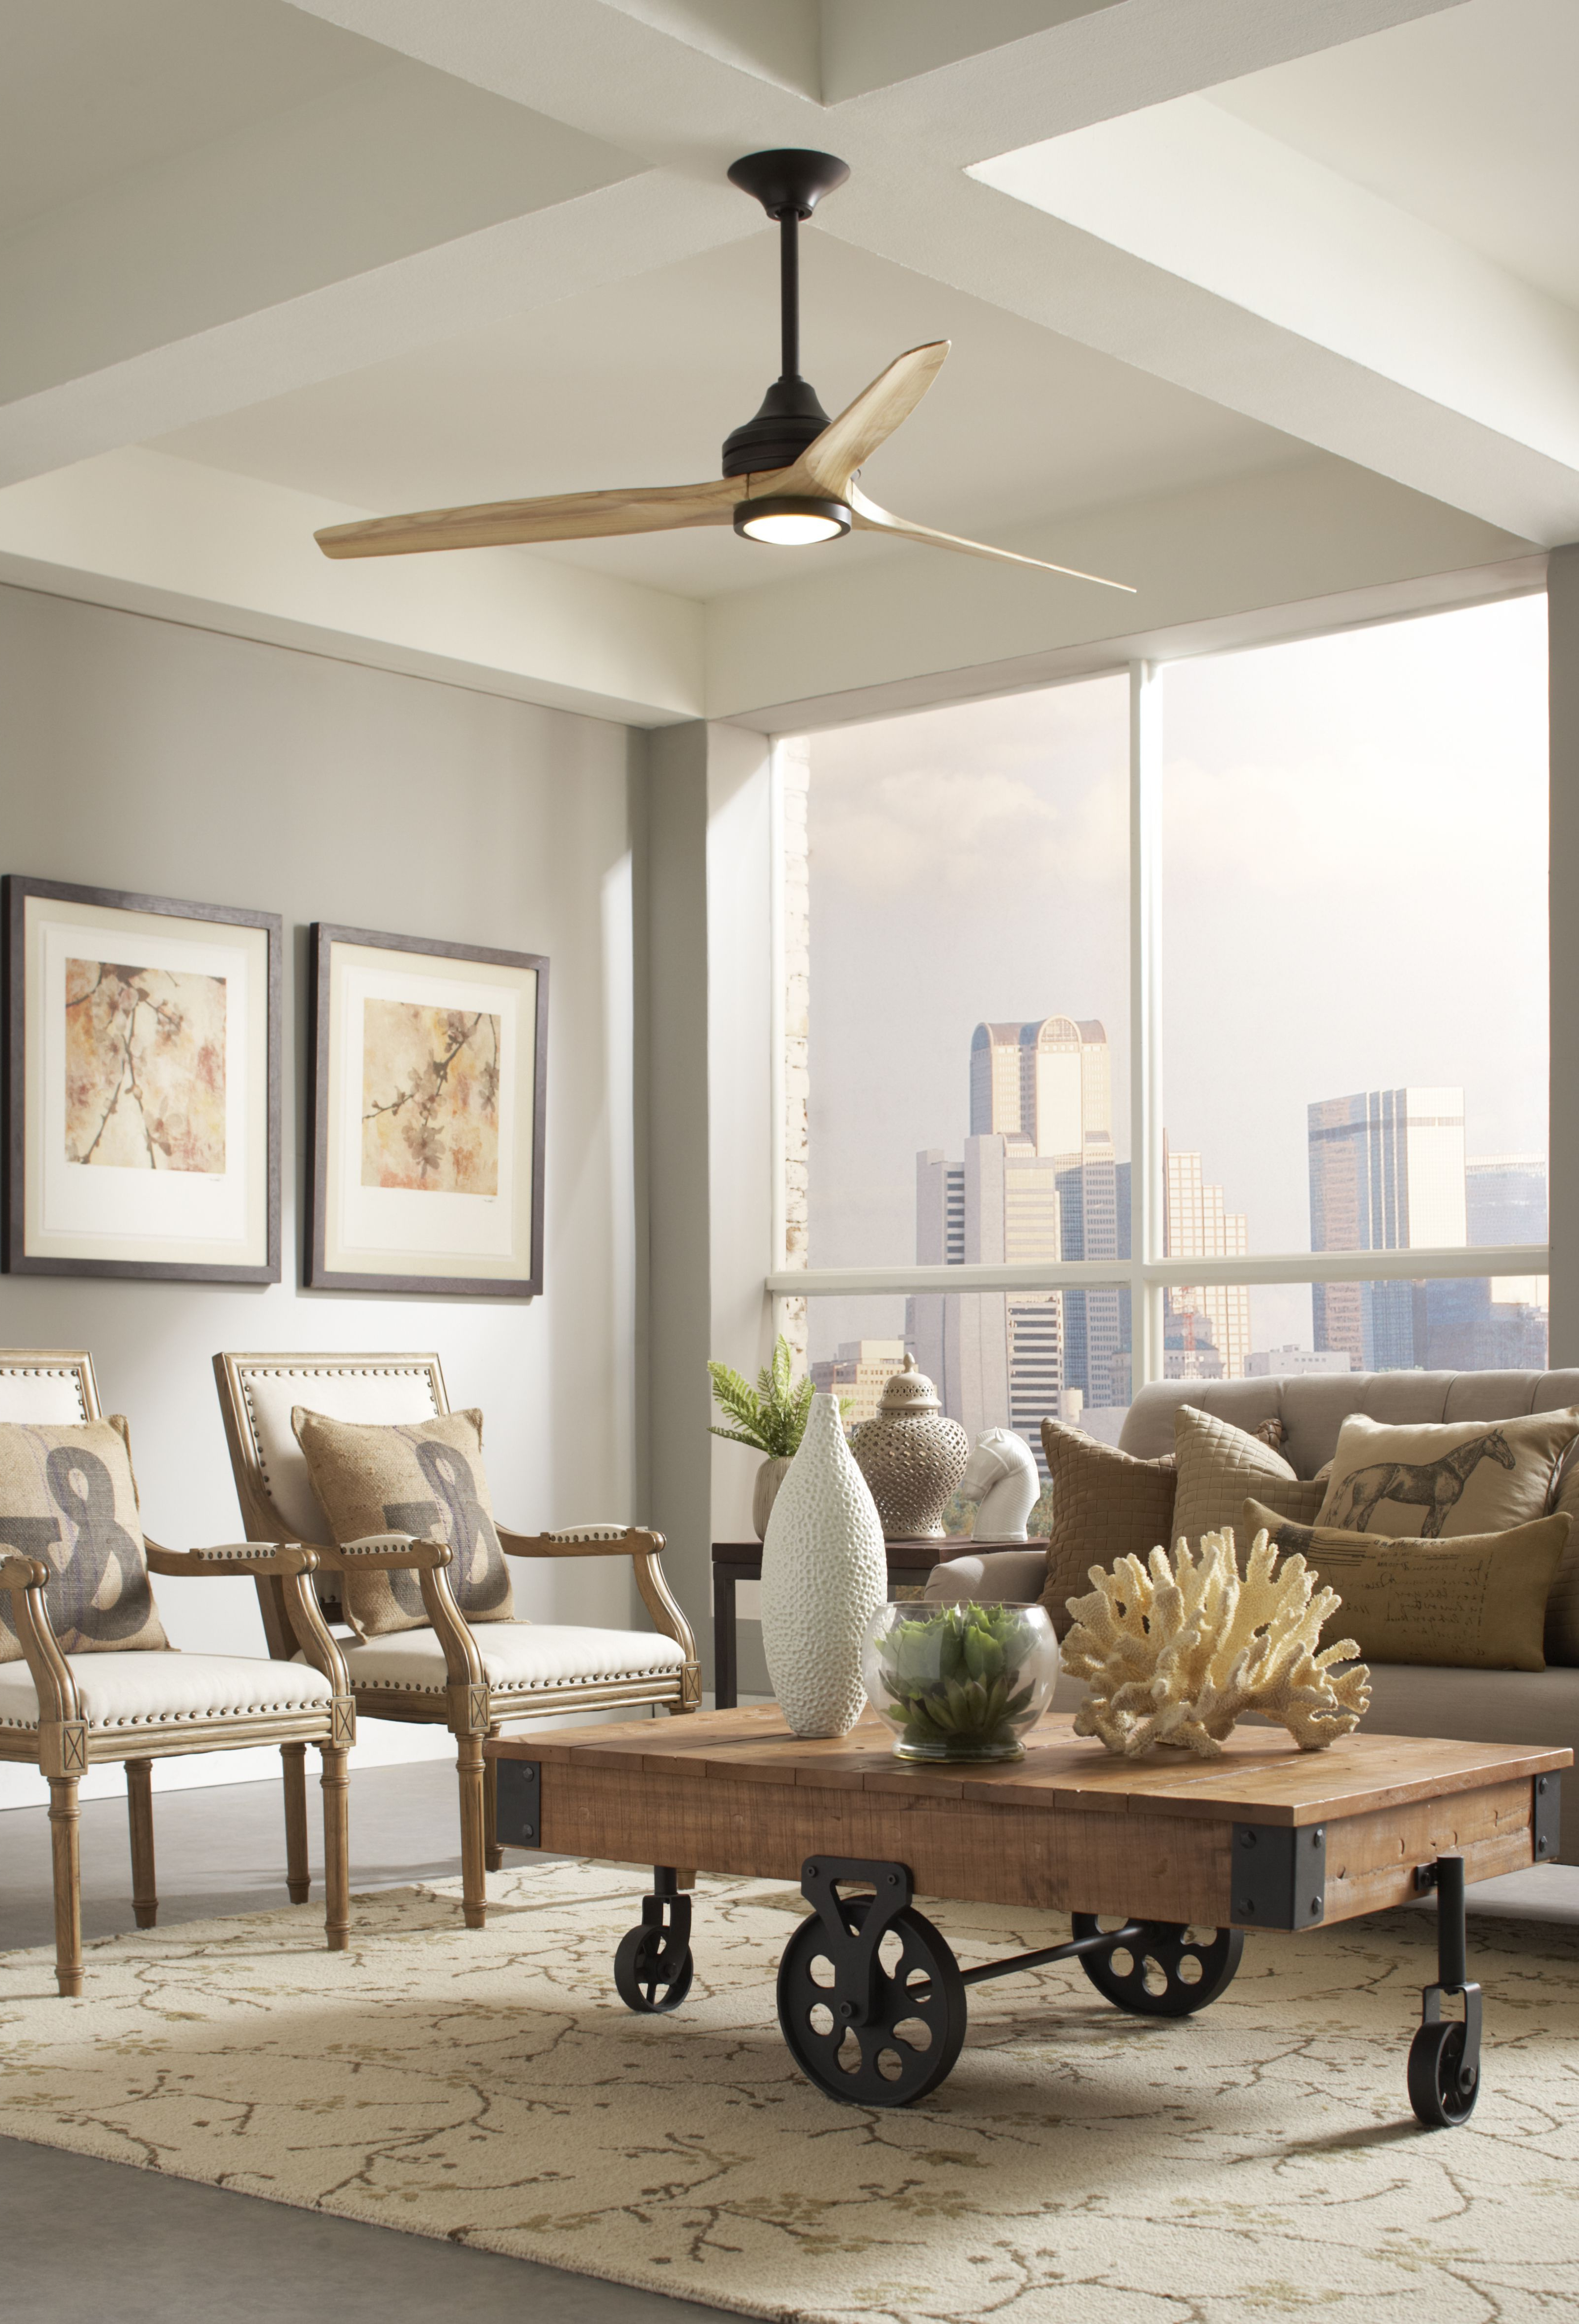 Widely Used Fanimation Fans Spitfire Ceiling Fan (View 19 of 20)